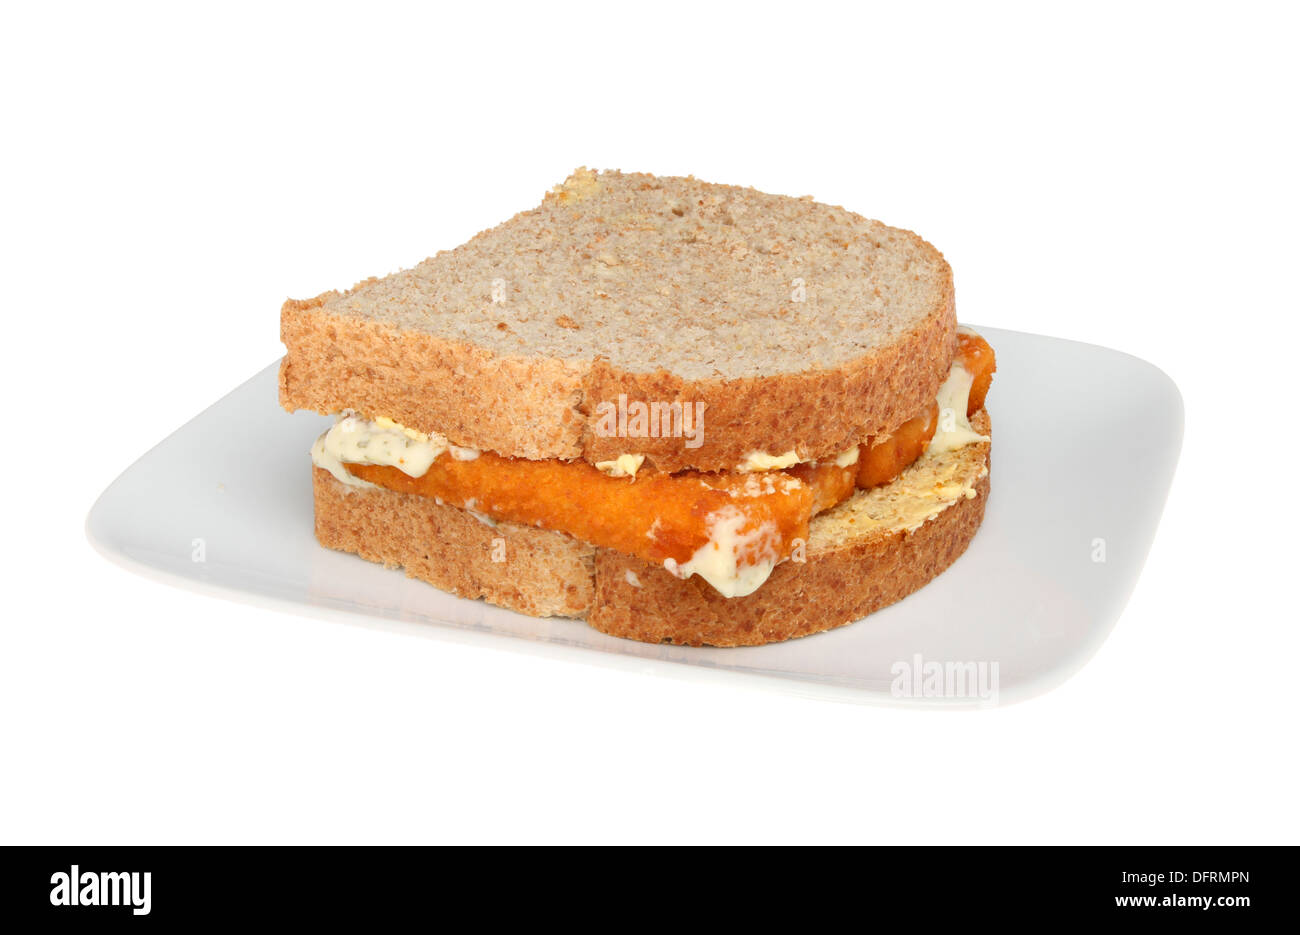 Fish finger sandwich on a plate isolated against white - Stock Image